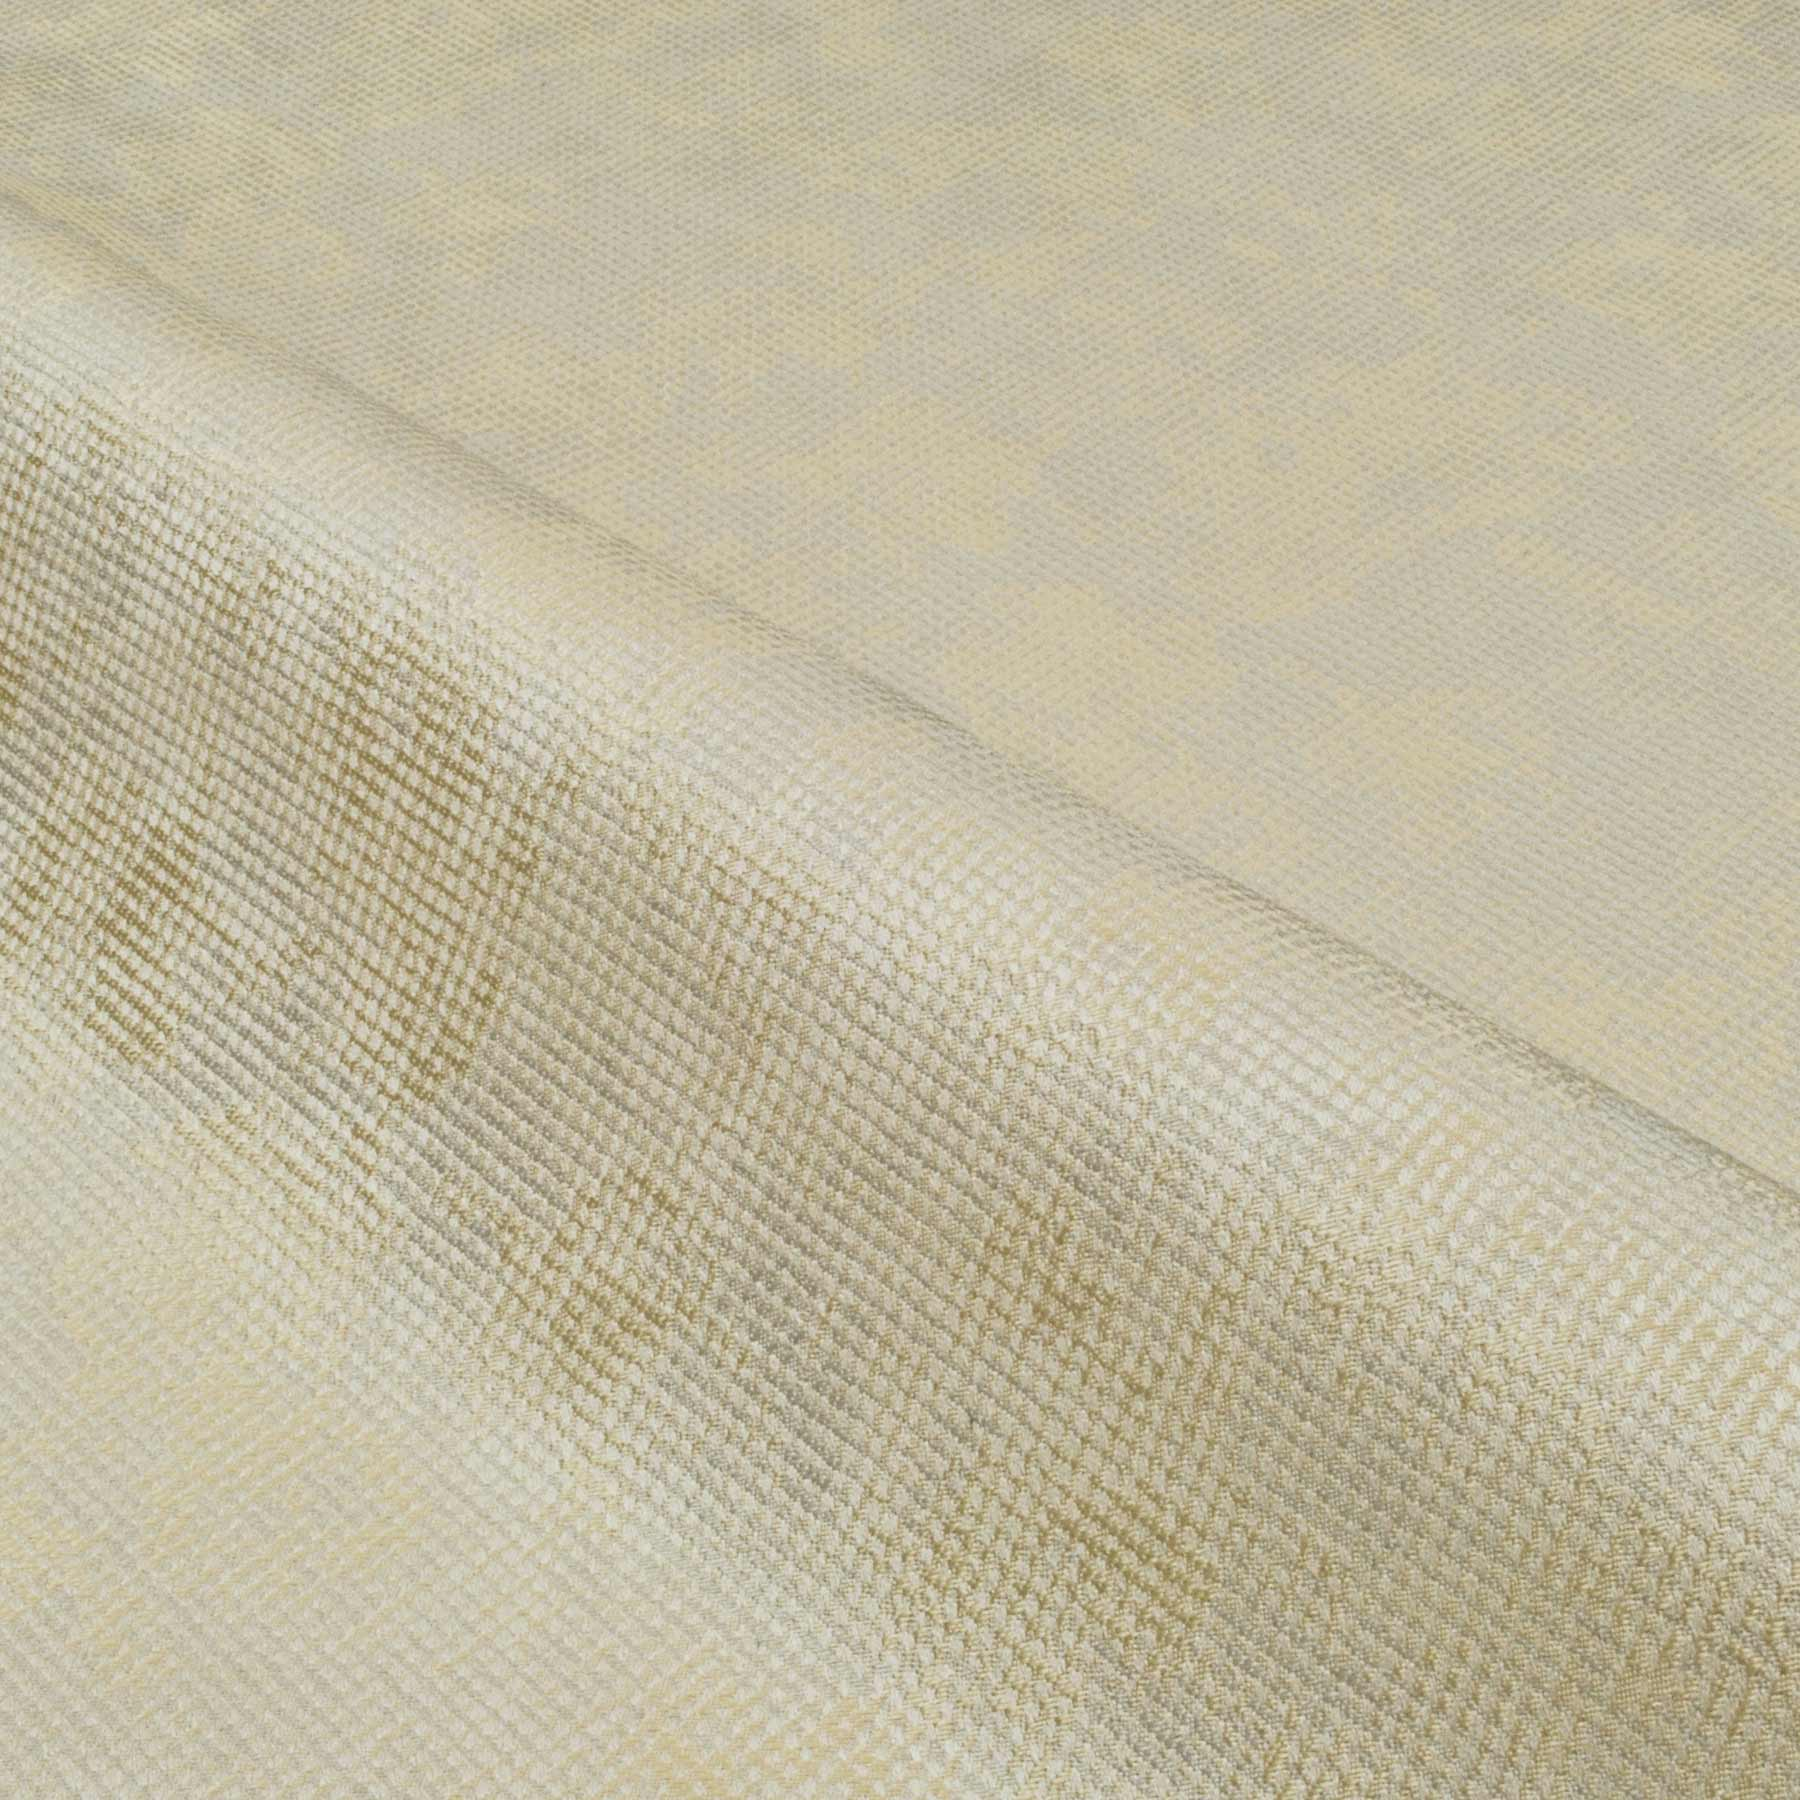 Drapery Fabric HFR OPHIDIAN In PLASTER By P/Kaufmann Contract